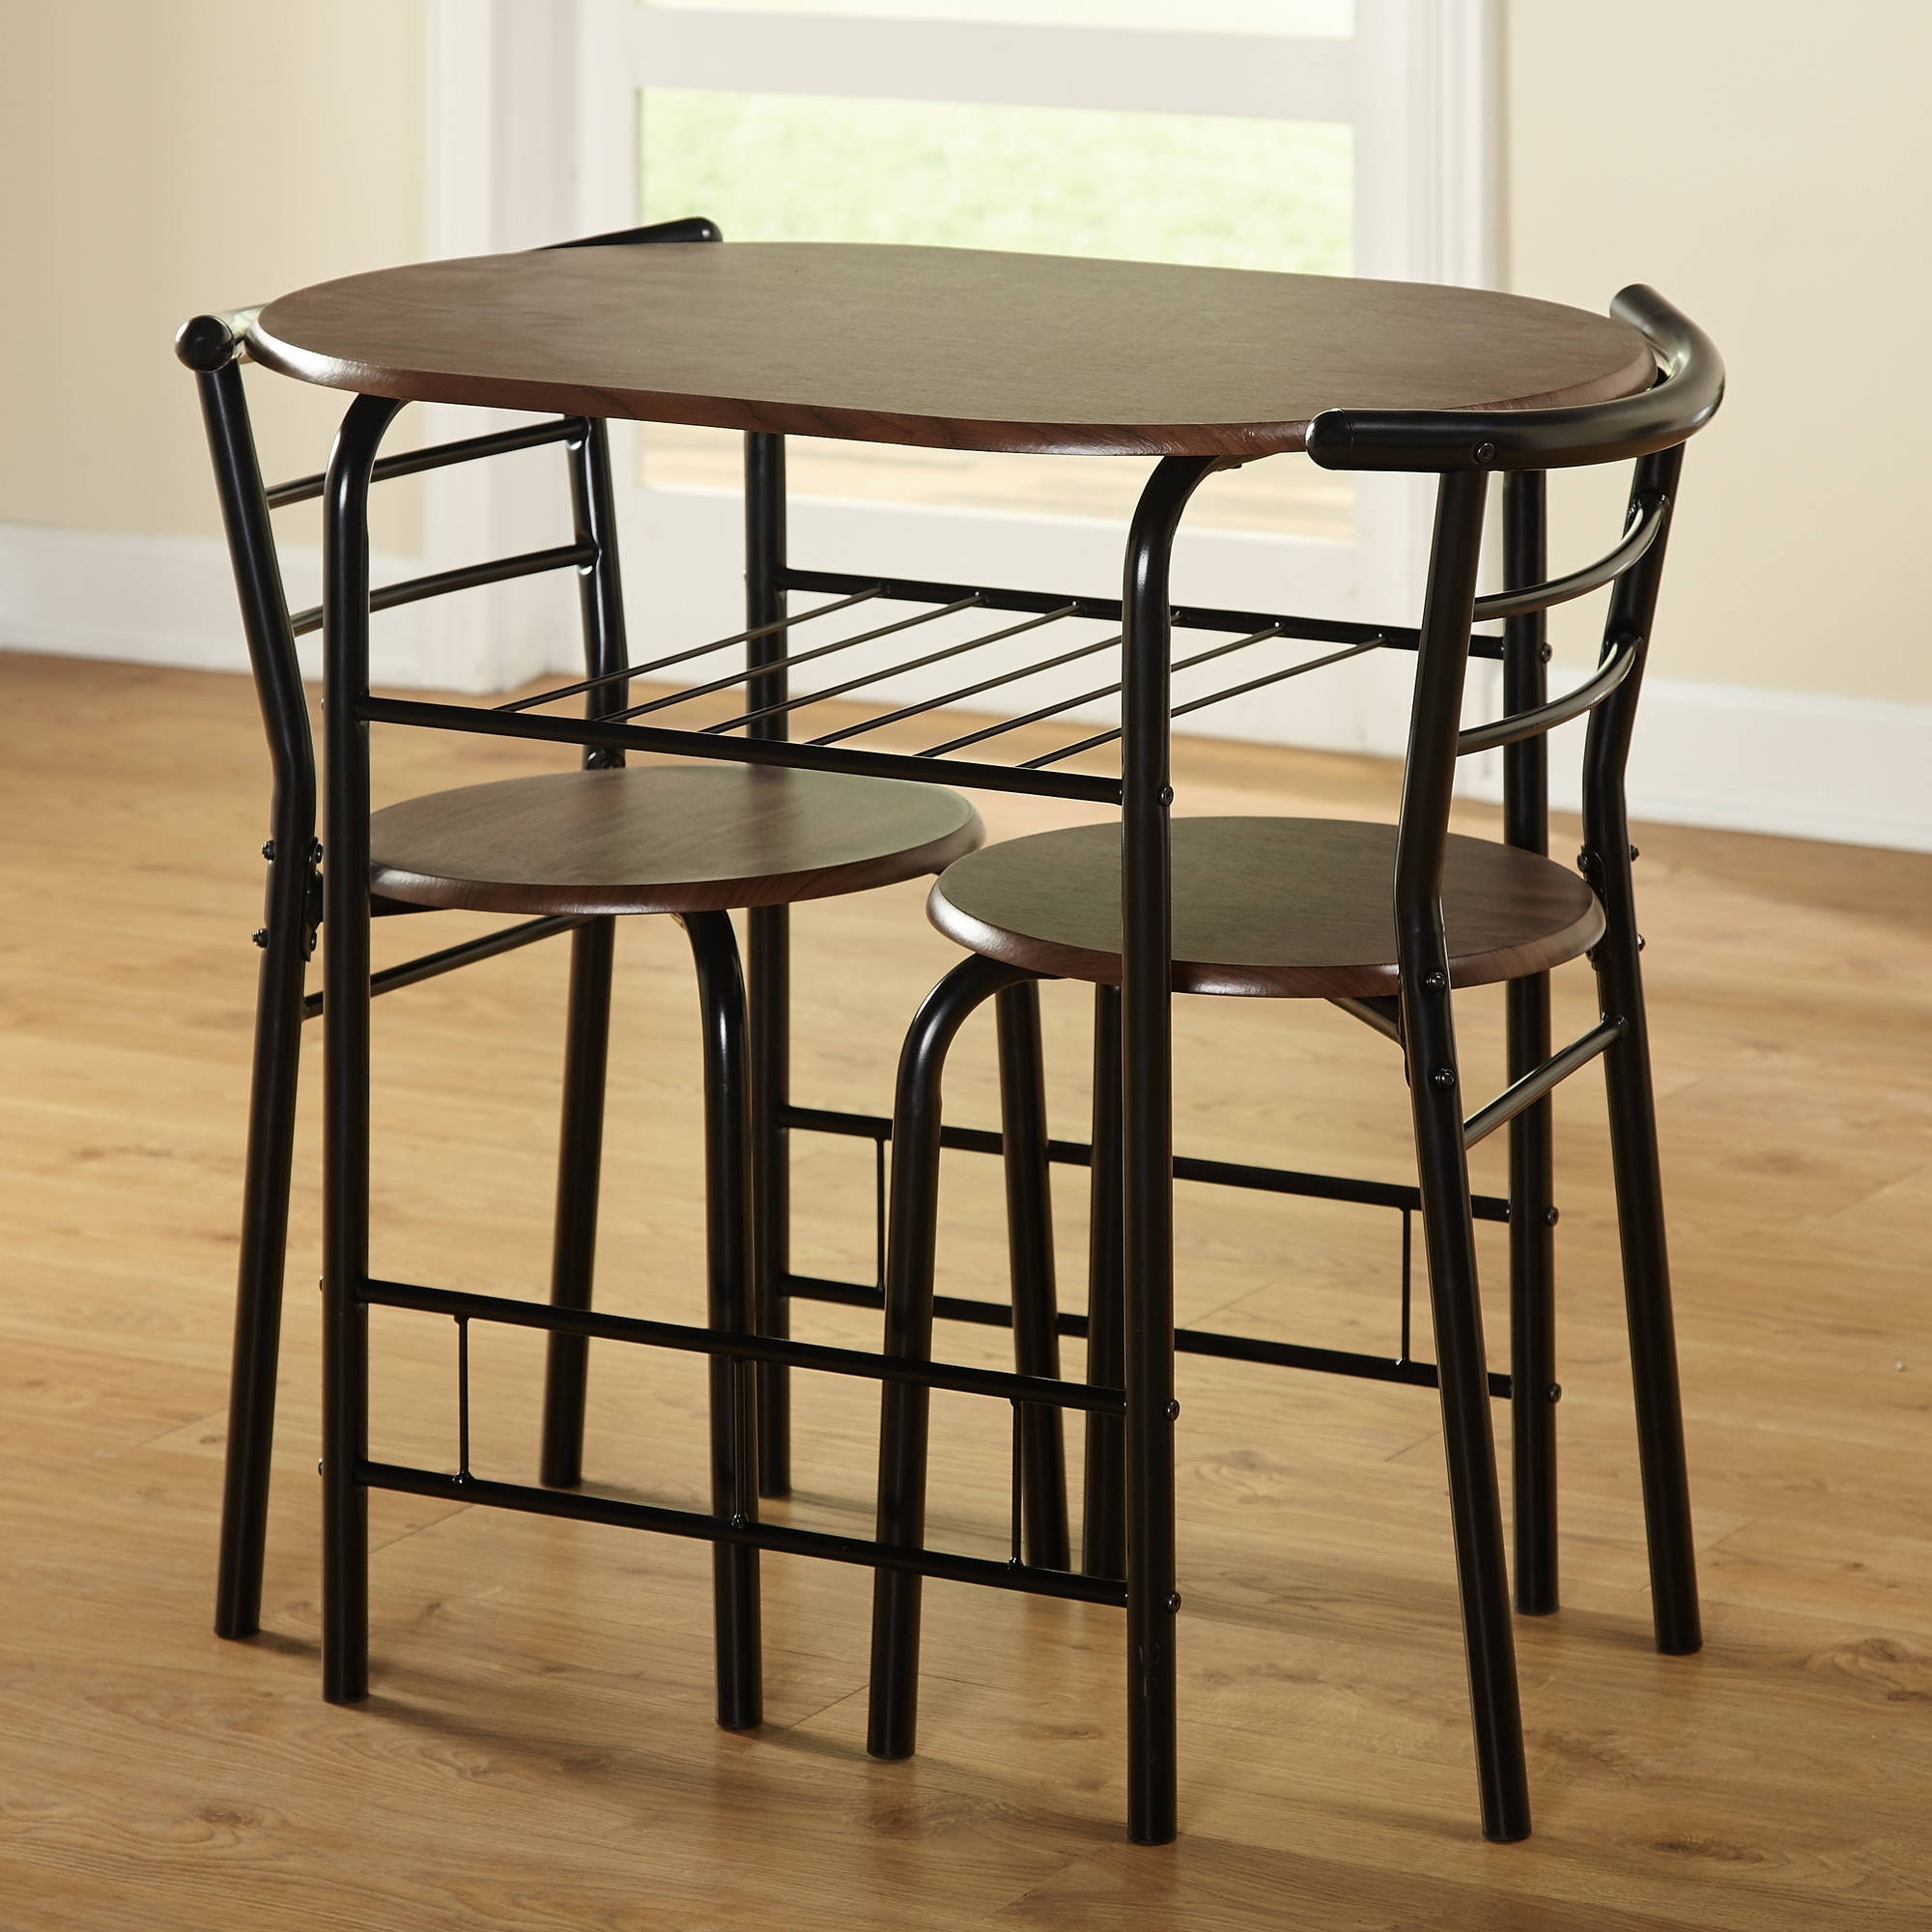 Dining Table Sets For 2 For Current 3 Piece Bistro Set Dining Oval Table 2 Chairs W/ Shelf Seat Black (Gallery 9 of 25)